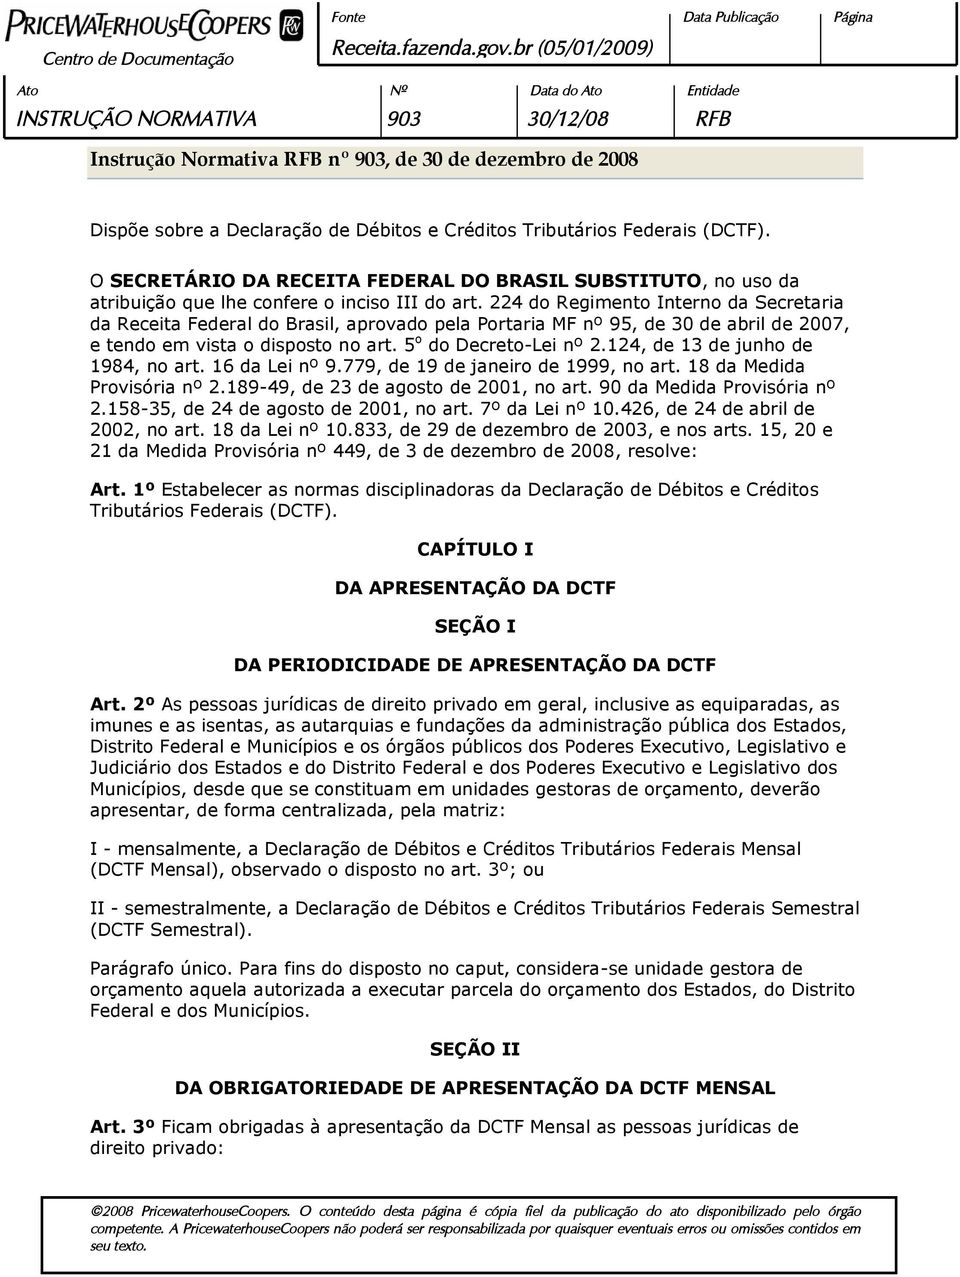 224 do Regimento Interno da Secretaria da Receita Federal do Brasil, aprovado pela Portaria MF nº 95, de 30 de abril de 2007, e tendo em vista o disposto no art. 5 o do Decreto-Lei nº 2.